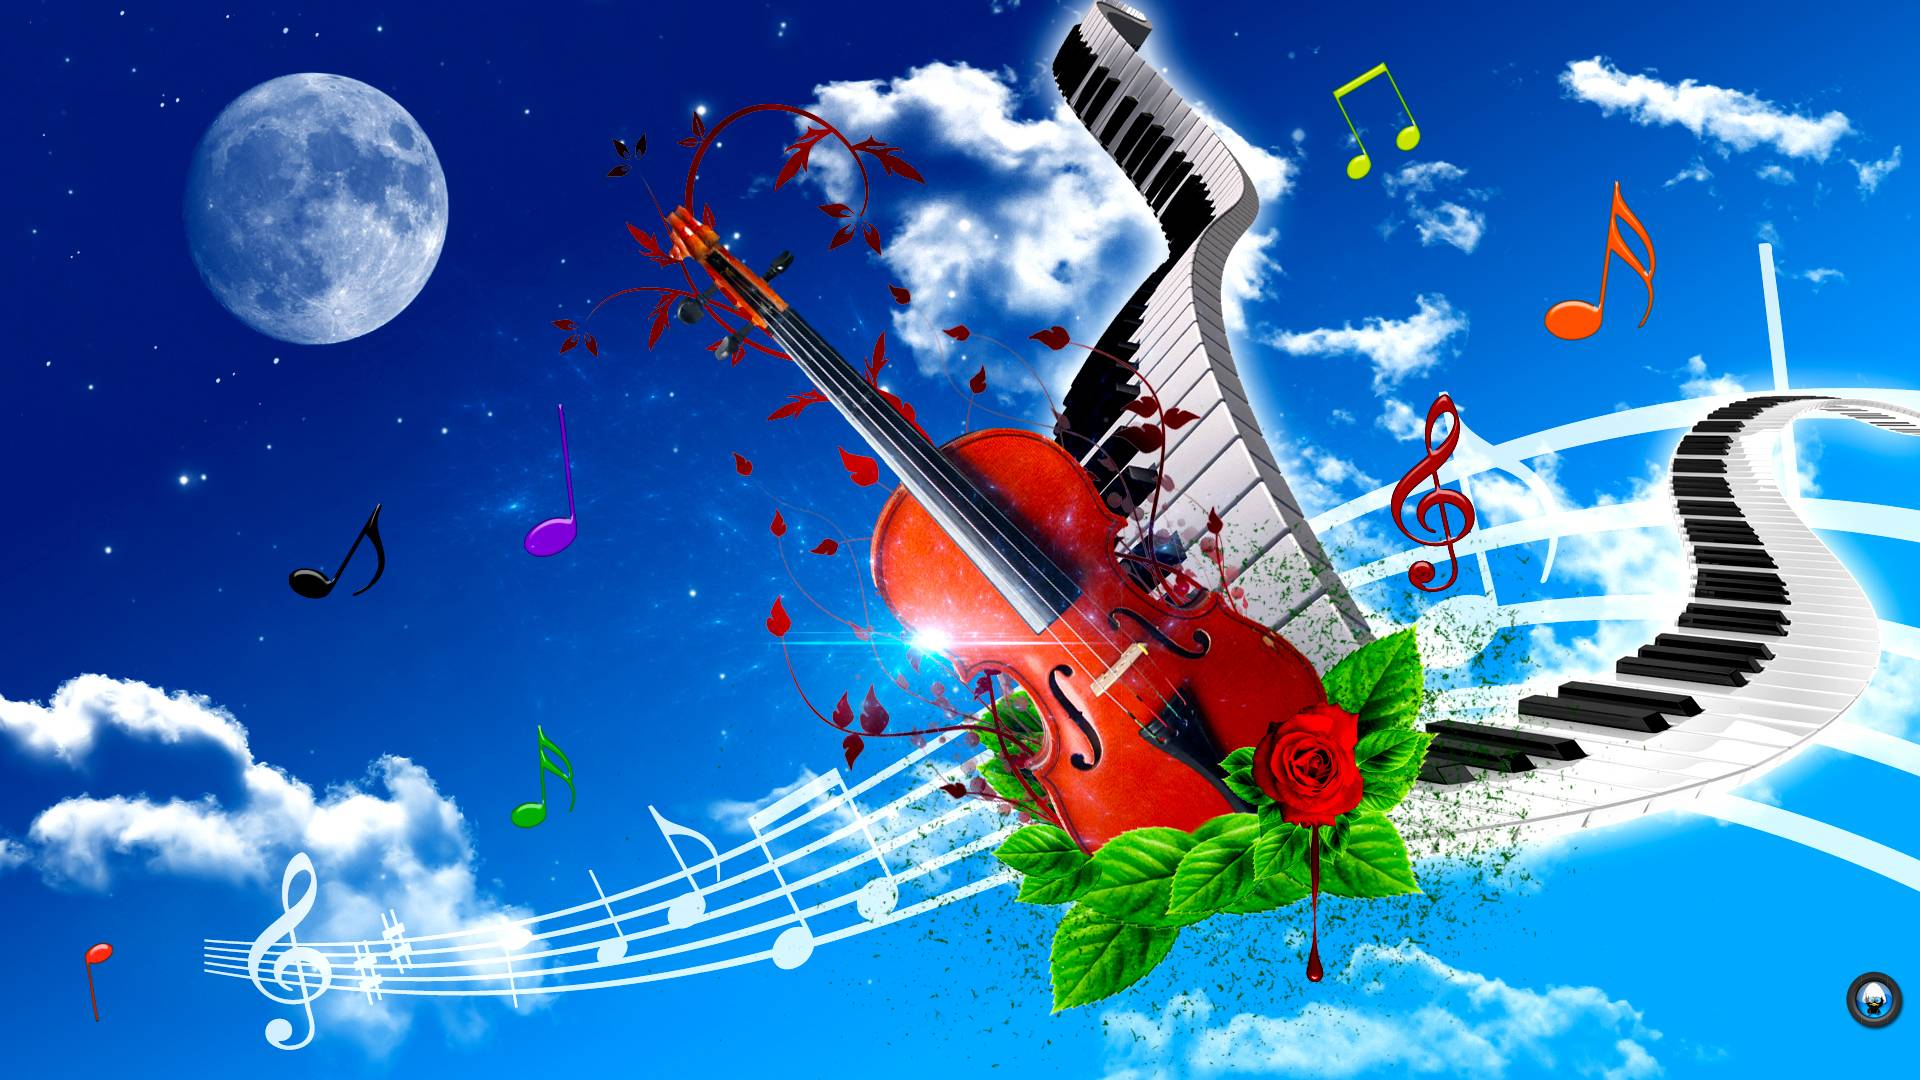 Violin And Piano Art Tone Wallpaper HD #6468 Wallpaper | Wallpaper ...